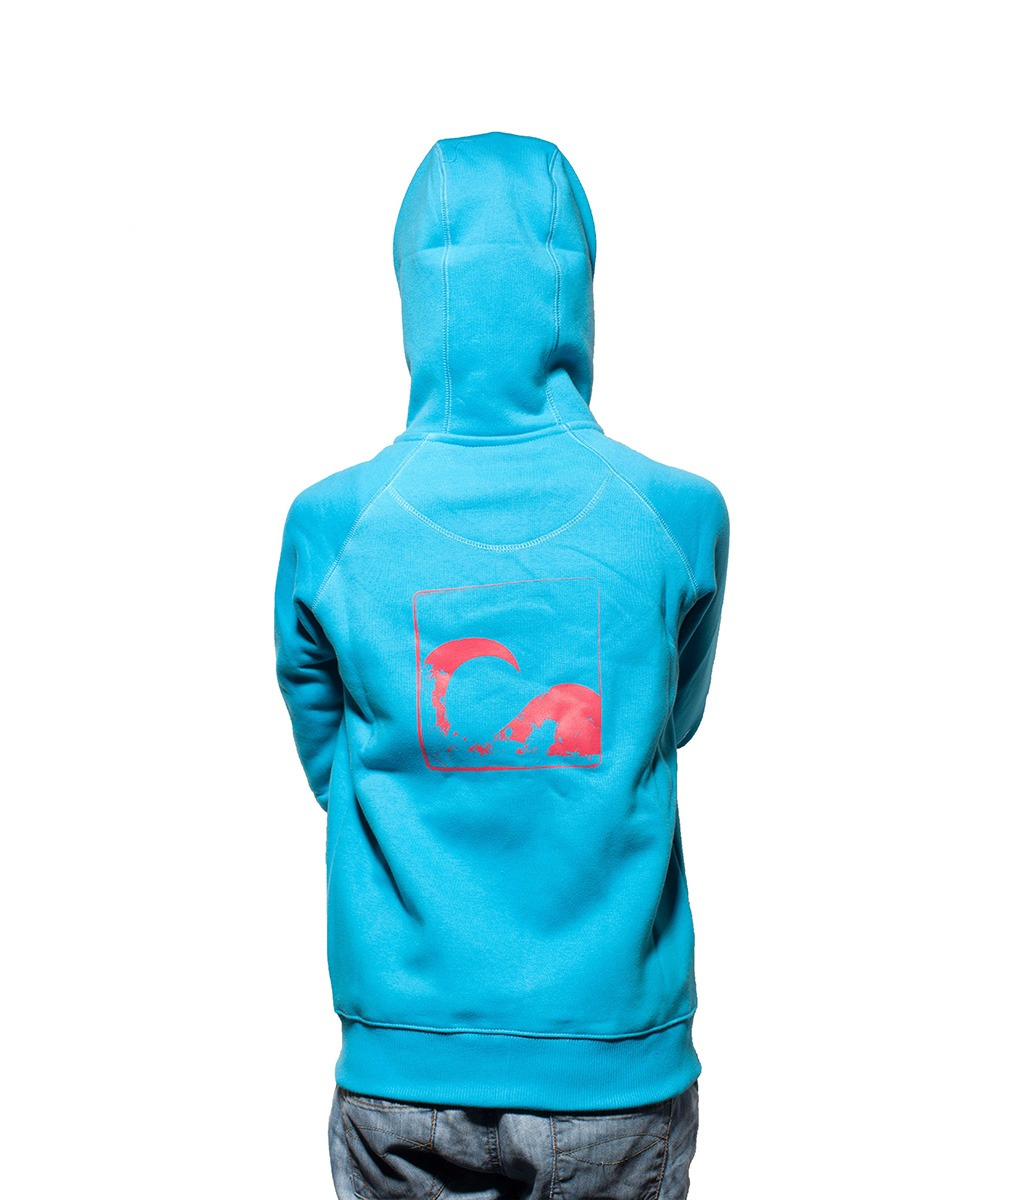 0fa592317 Surf Model Wearing Evokaii Zipper Wave Hoodie Seen From The Back In Blue  Colour